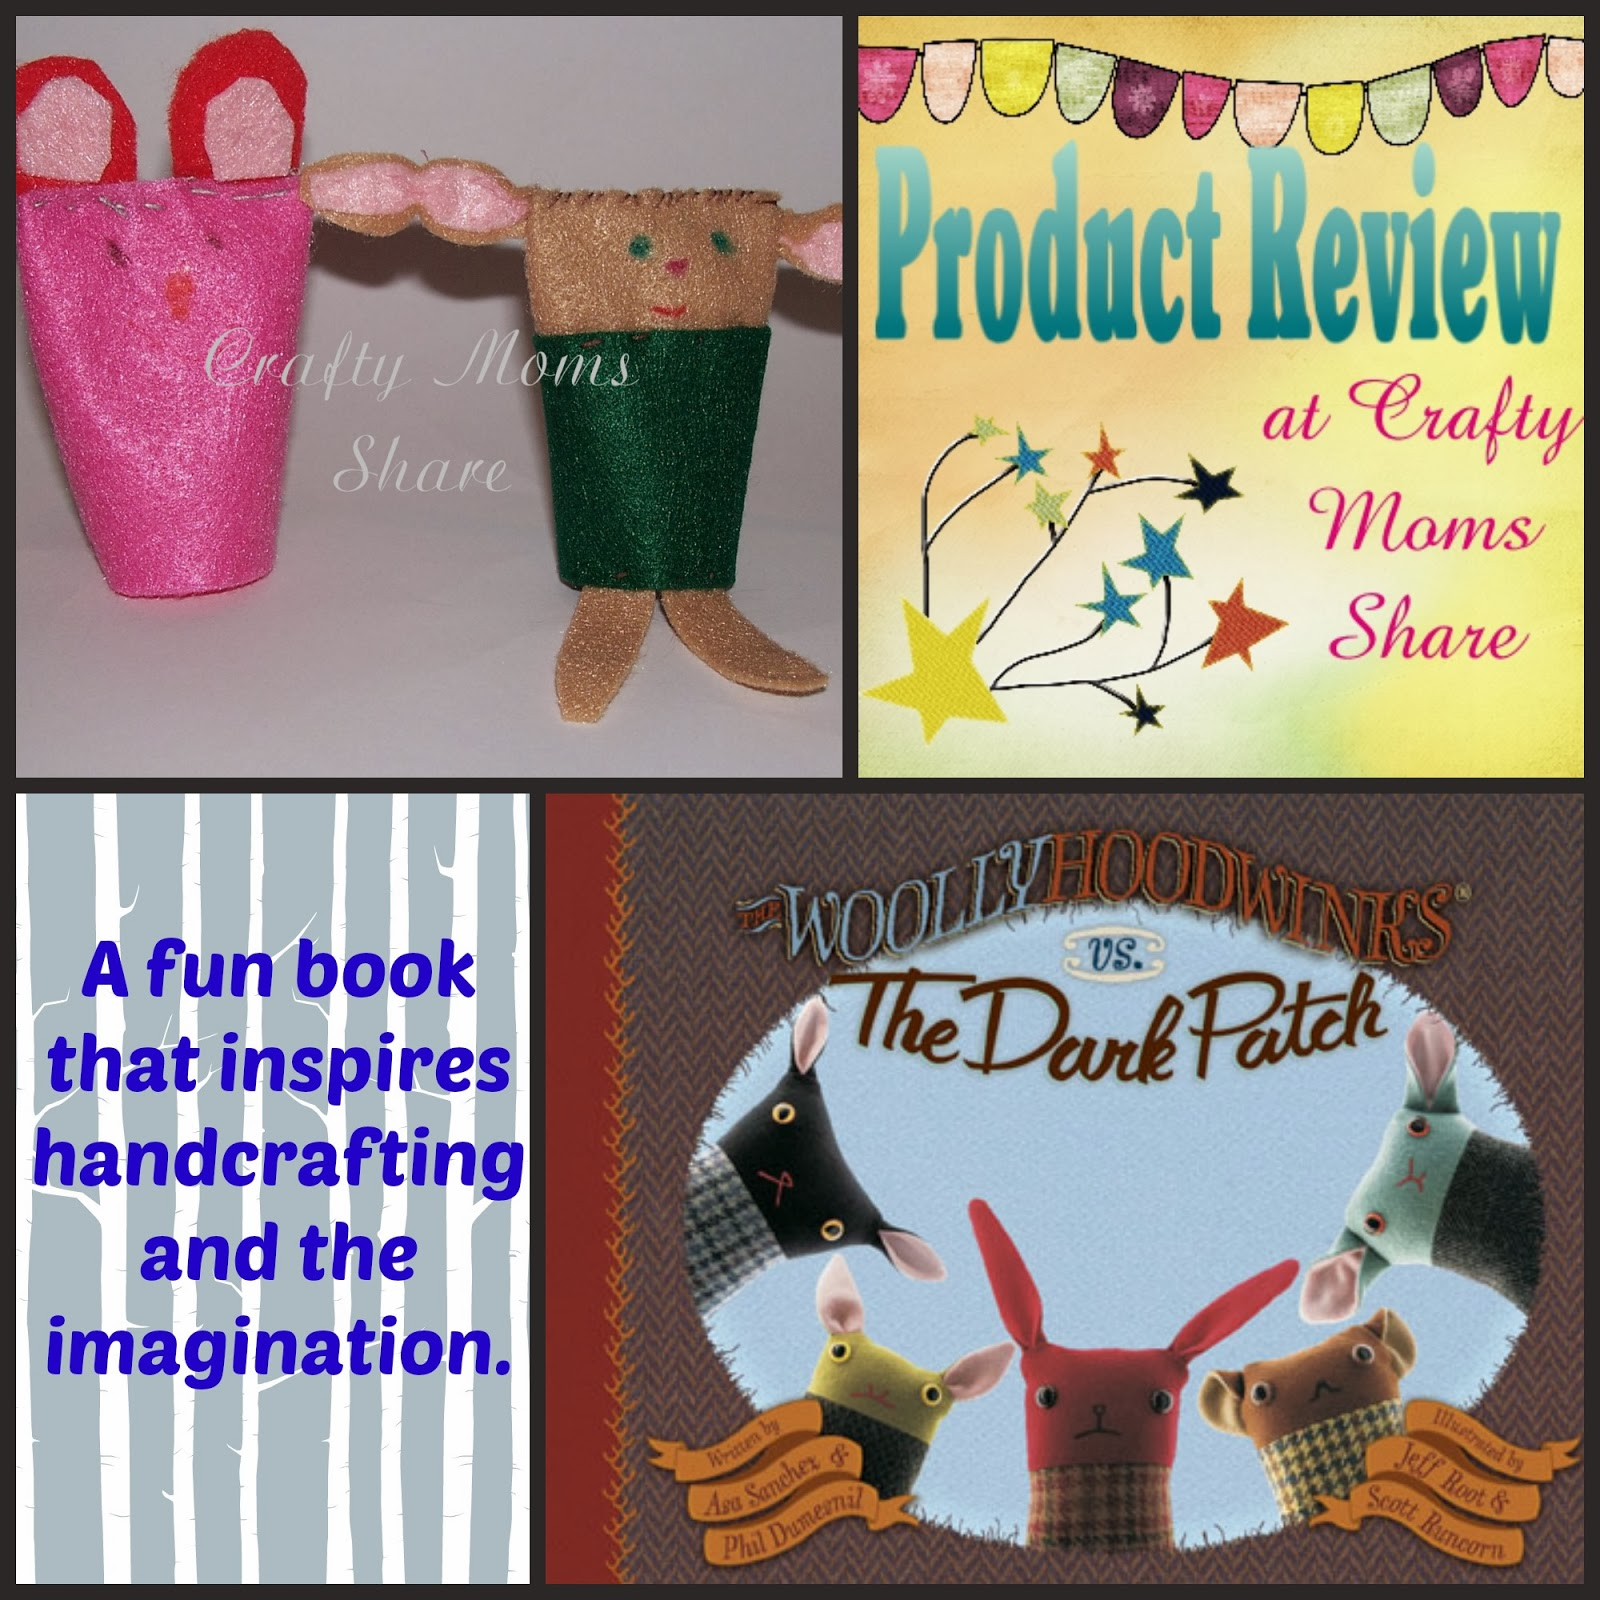 Book Review & Craft The Woollyhoodwinks Vs The Dark Patch